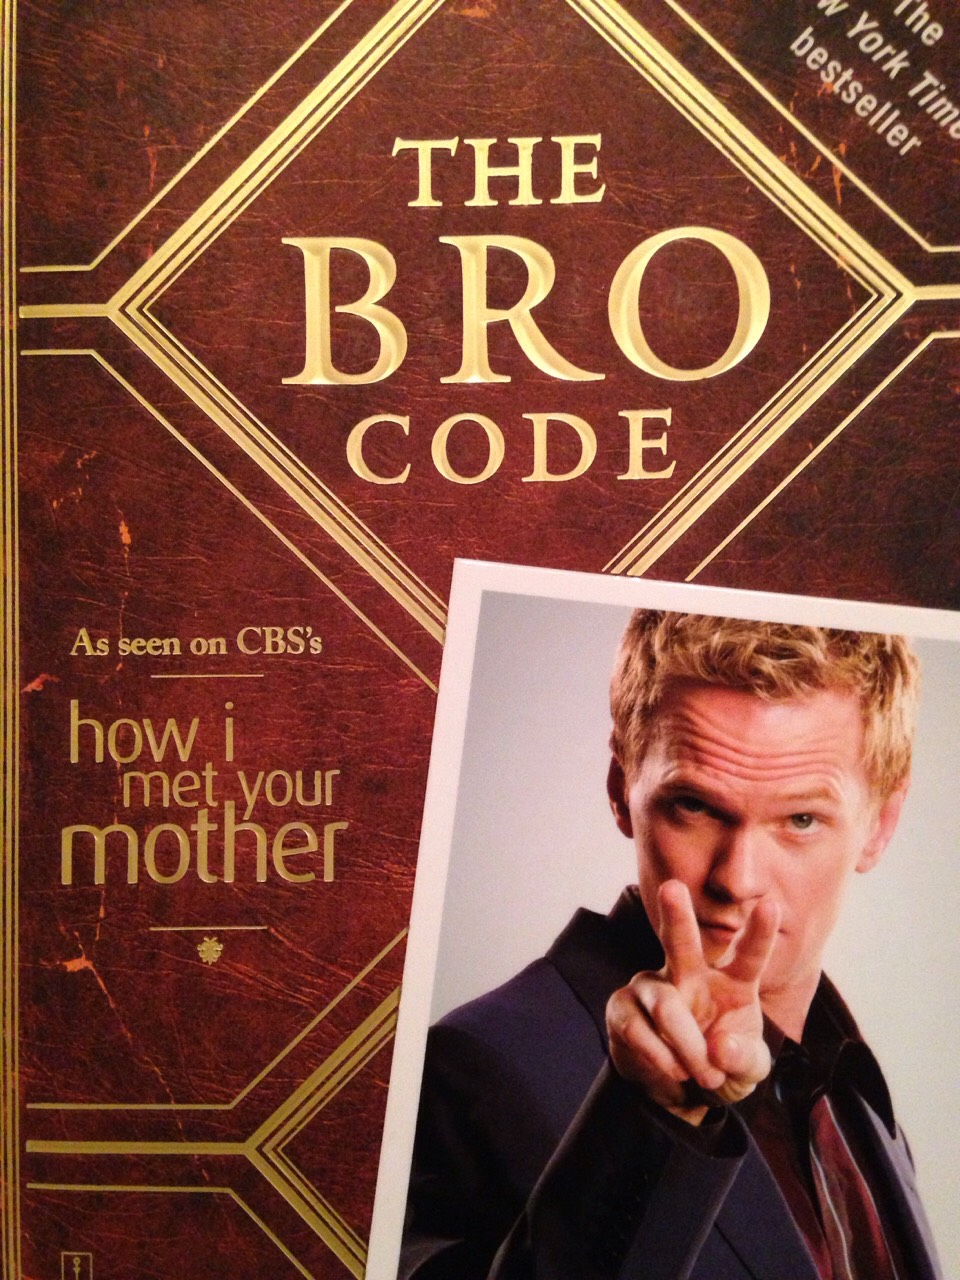 """According to Barney Stinson in this book, """"The Bro Code"""" as featured on the tv show """"How I Met Your Mother"""", there are 21 classic """"get psyched"""" songs. Everyone should make this cd mix for themselves for those times when you need to get pumped up!!!"""